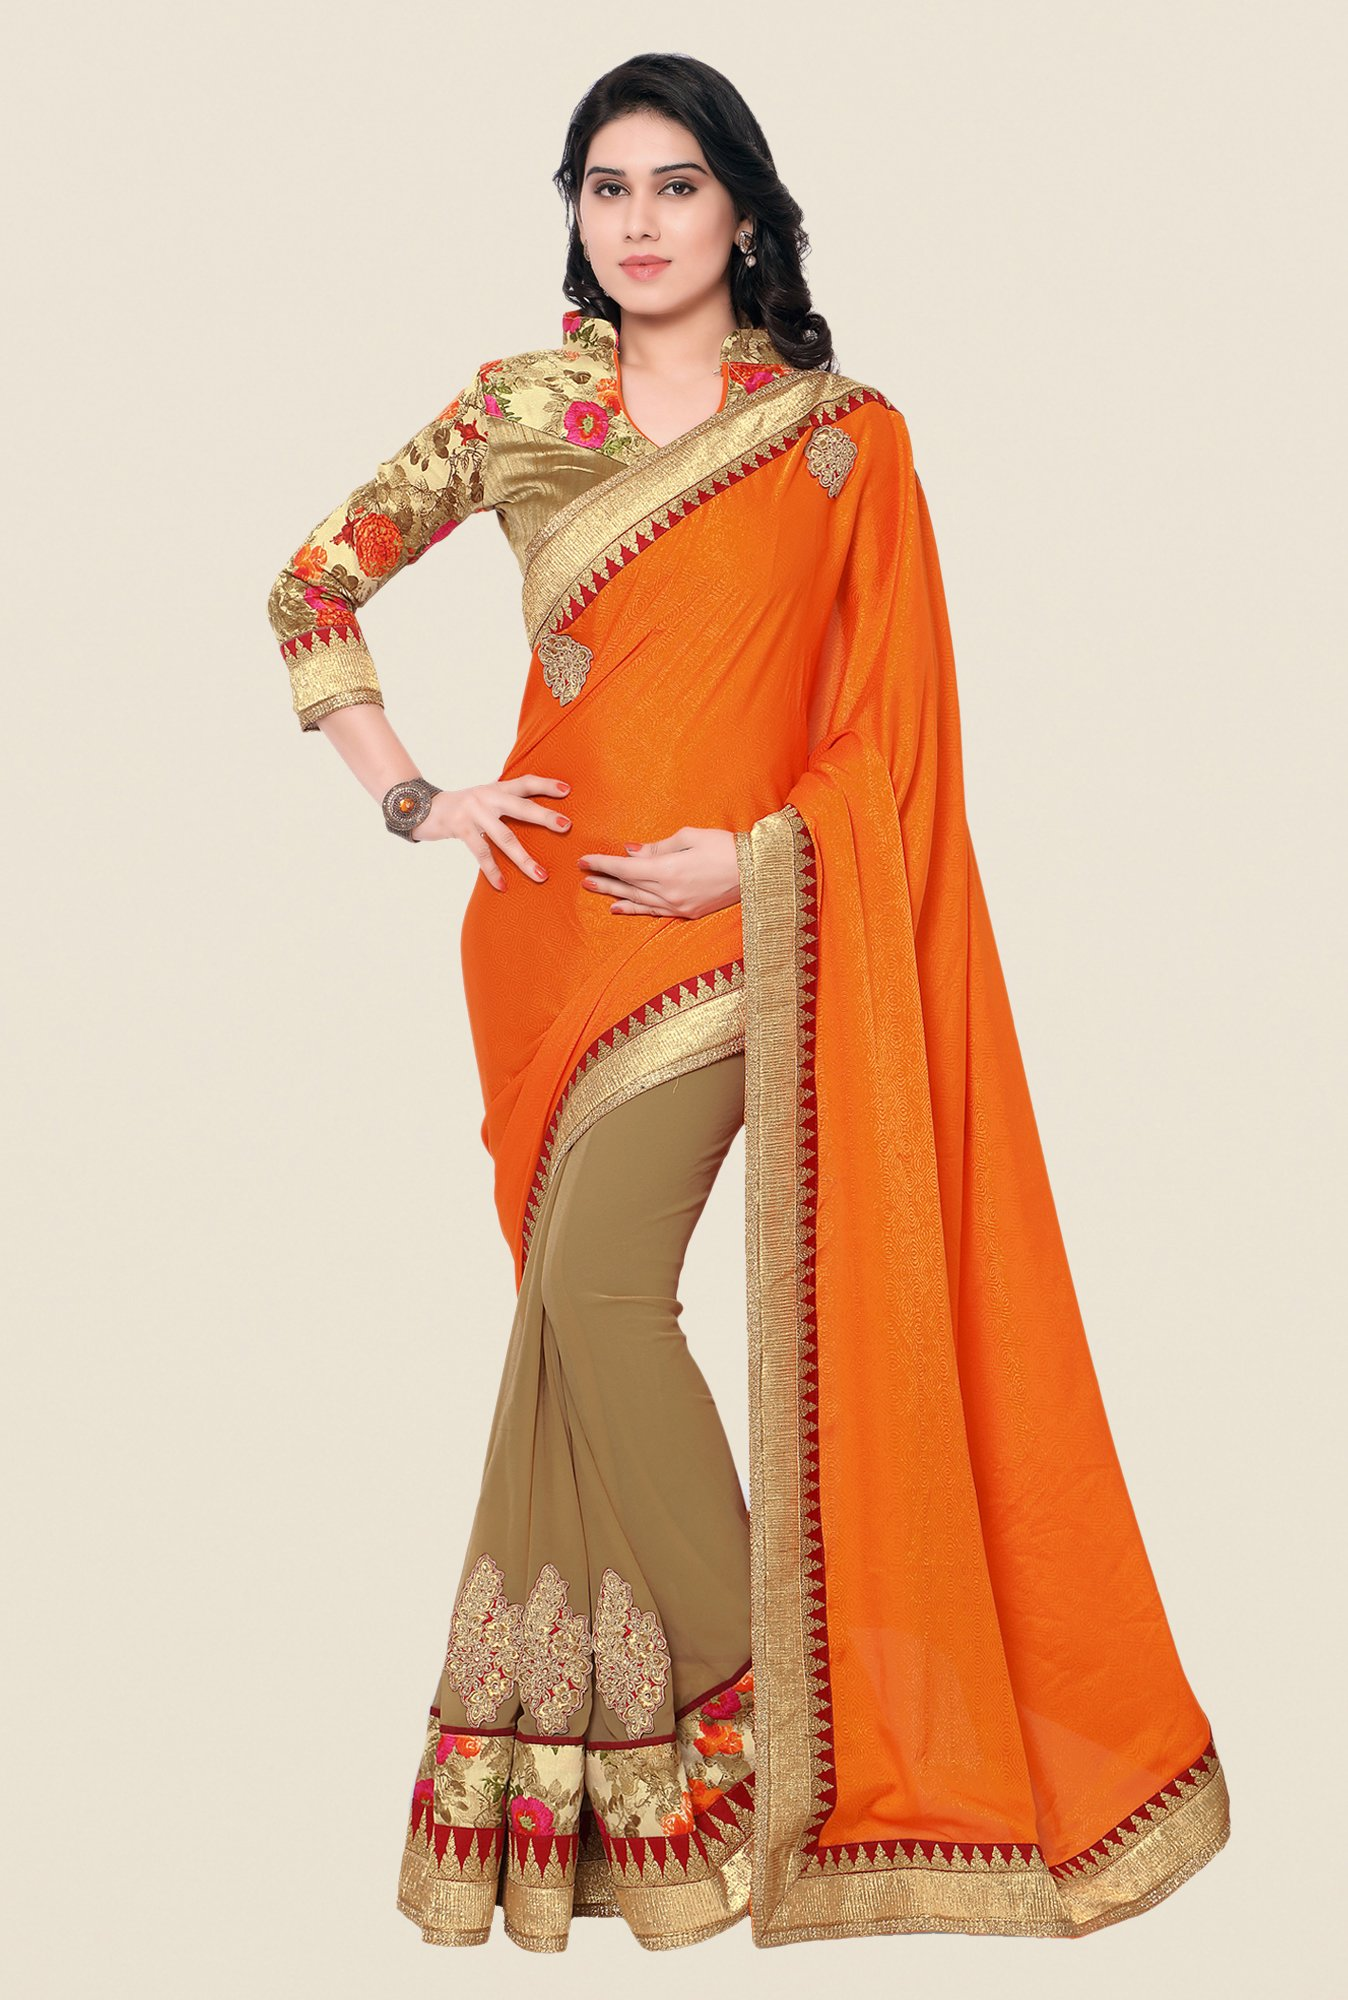 Shonaya Beige & Orange Crepe Jacquard & Georgette Saree